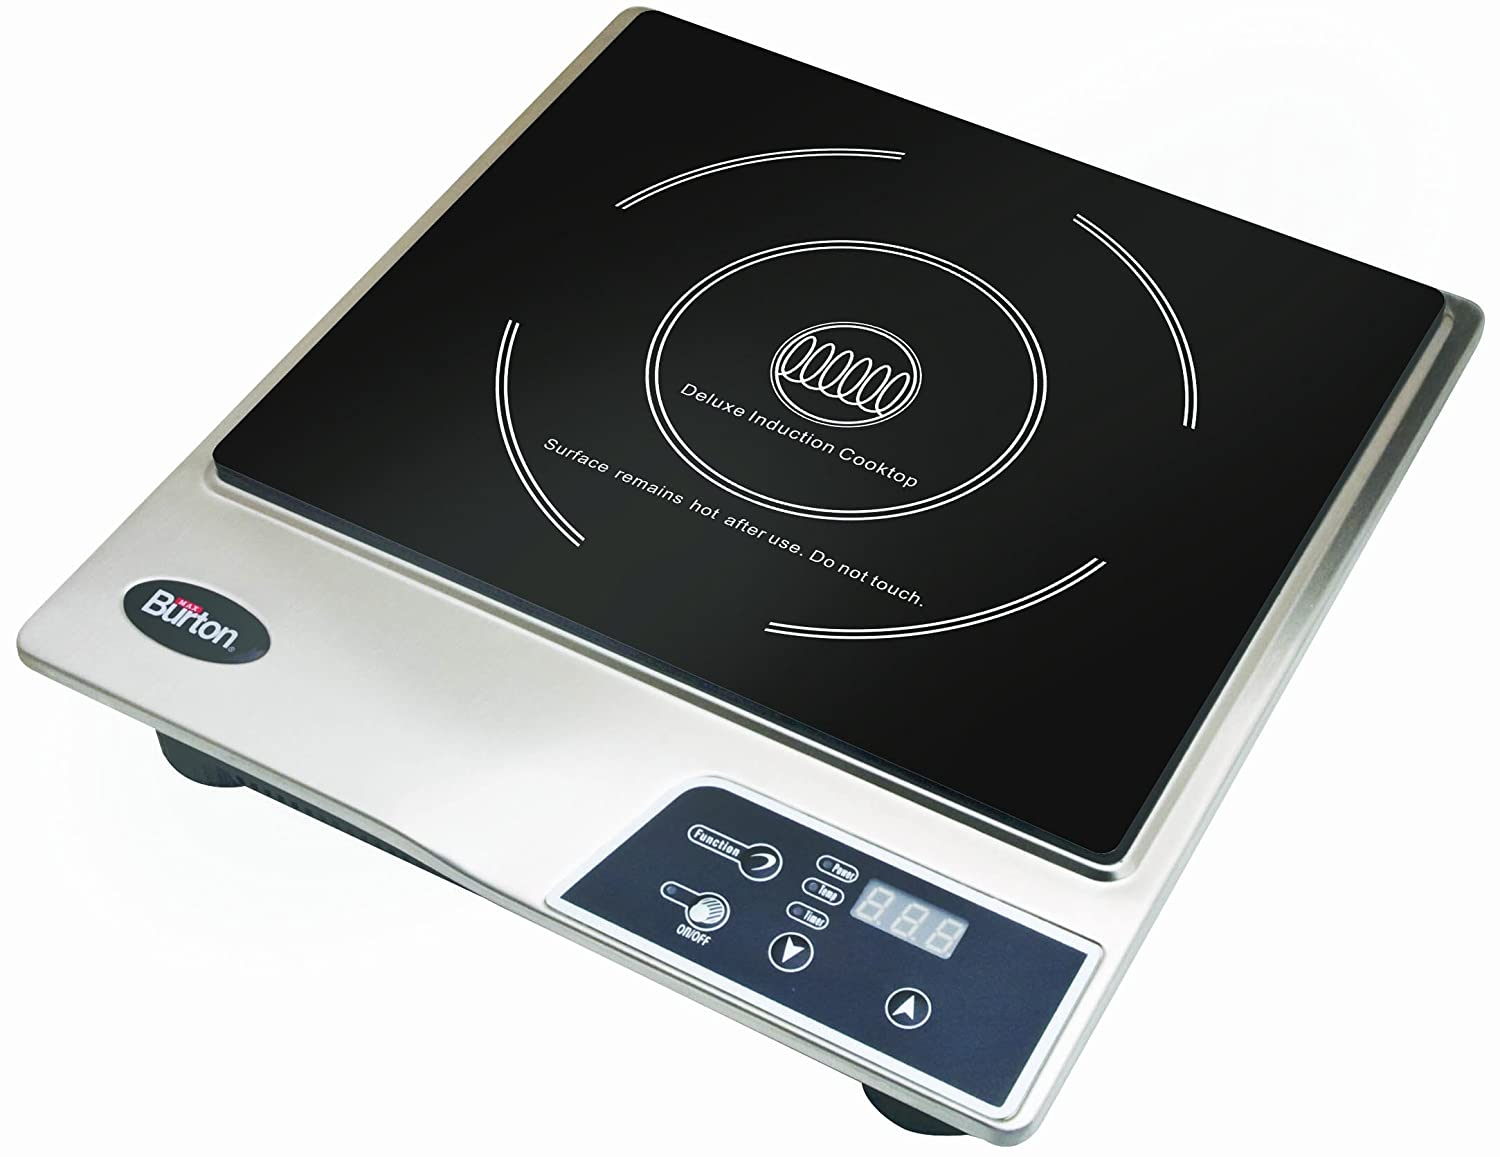 Max Burton 6200 Maxi Matic Deluxe 1800 Watt Induction Cooktop, Black by Max Burton